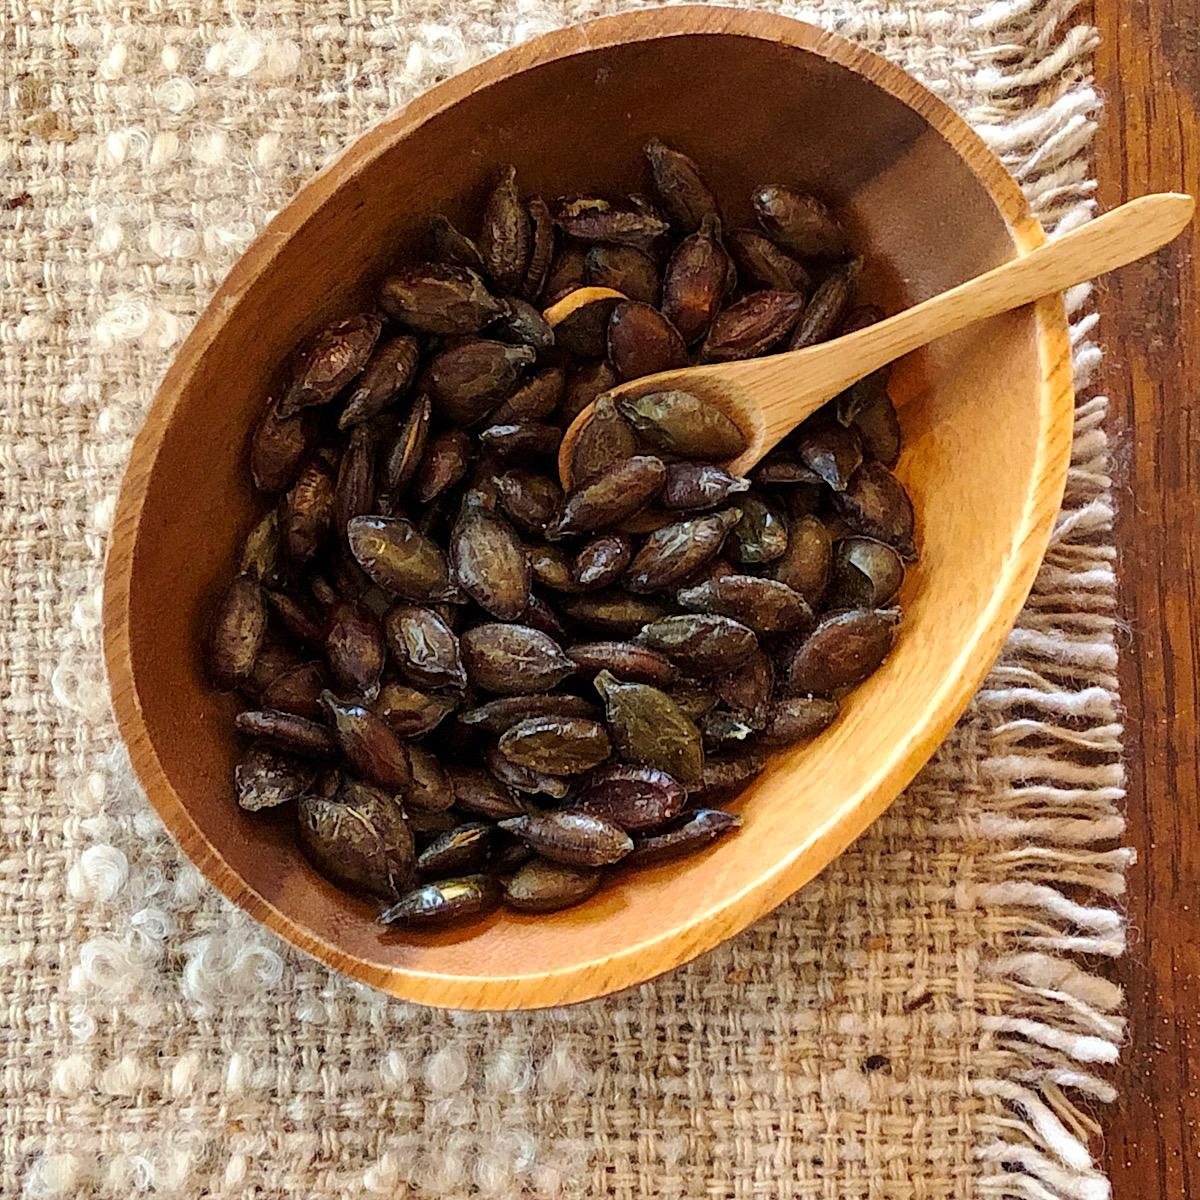 Bowl of roasted seeds from heirloom squash